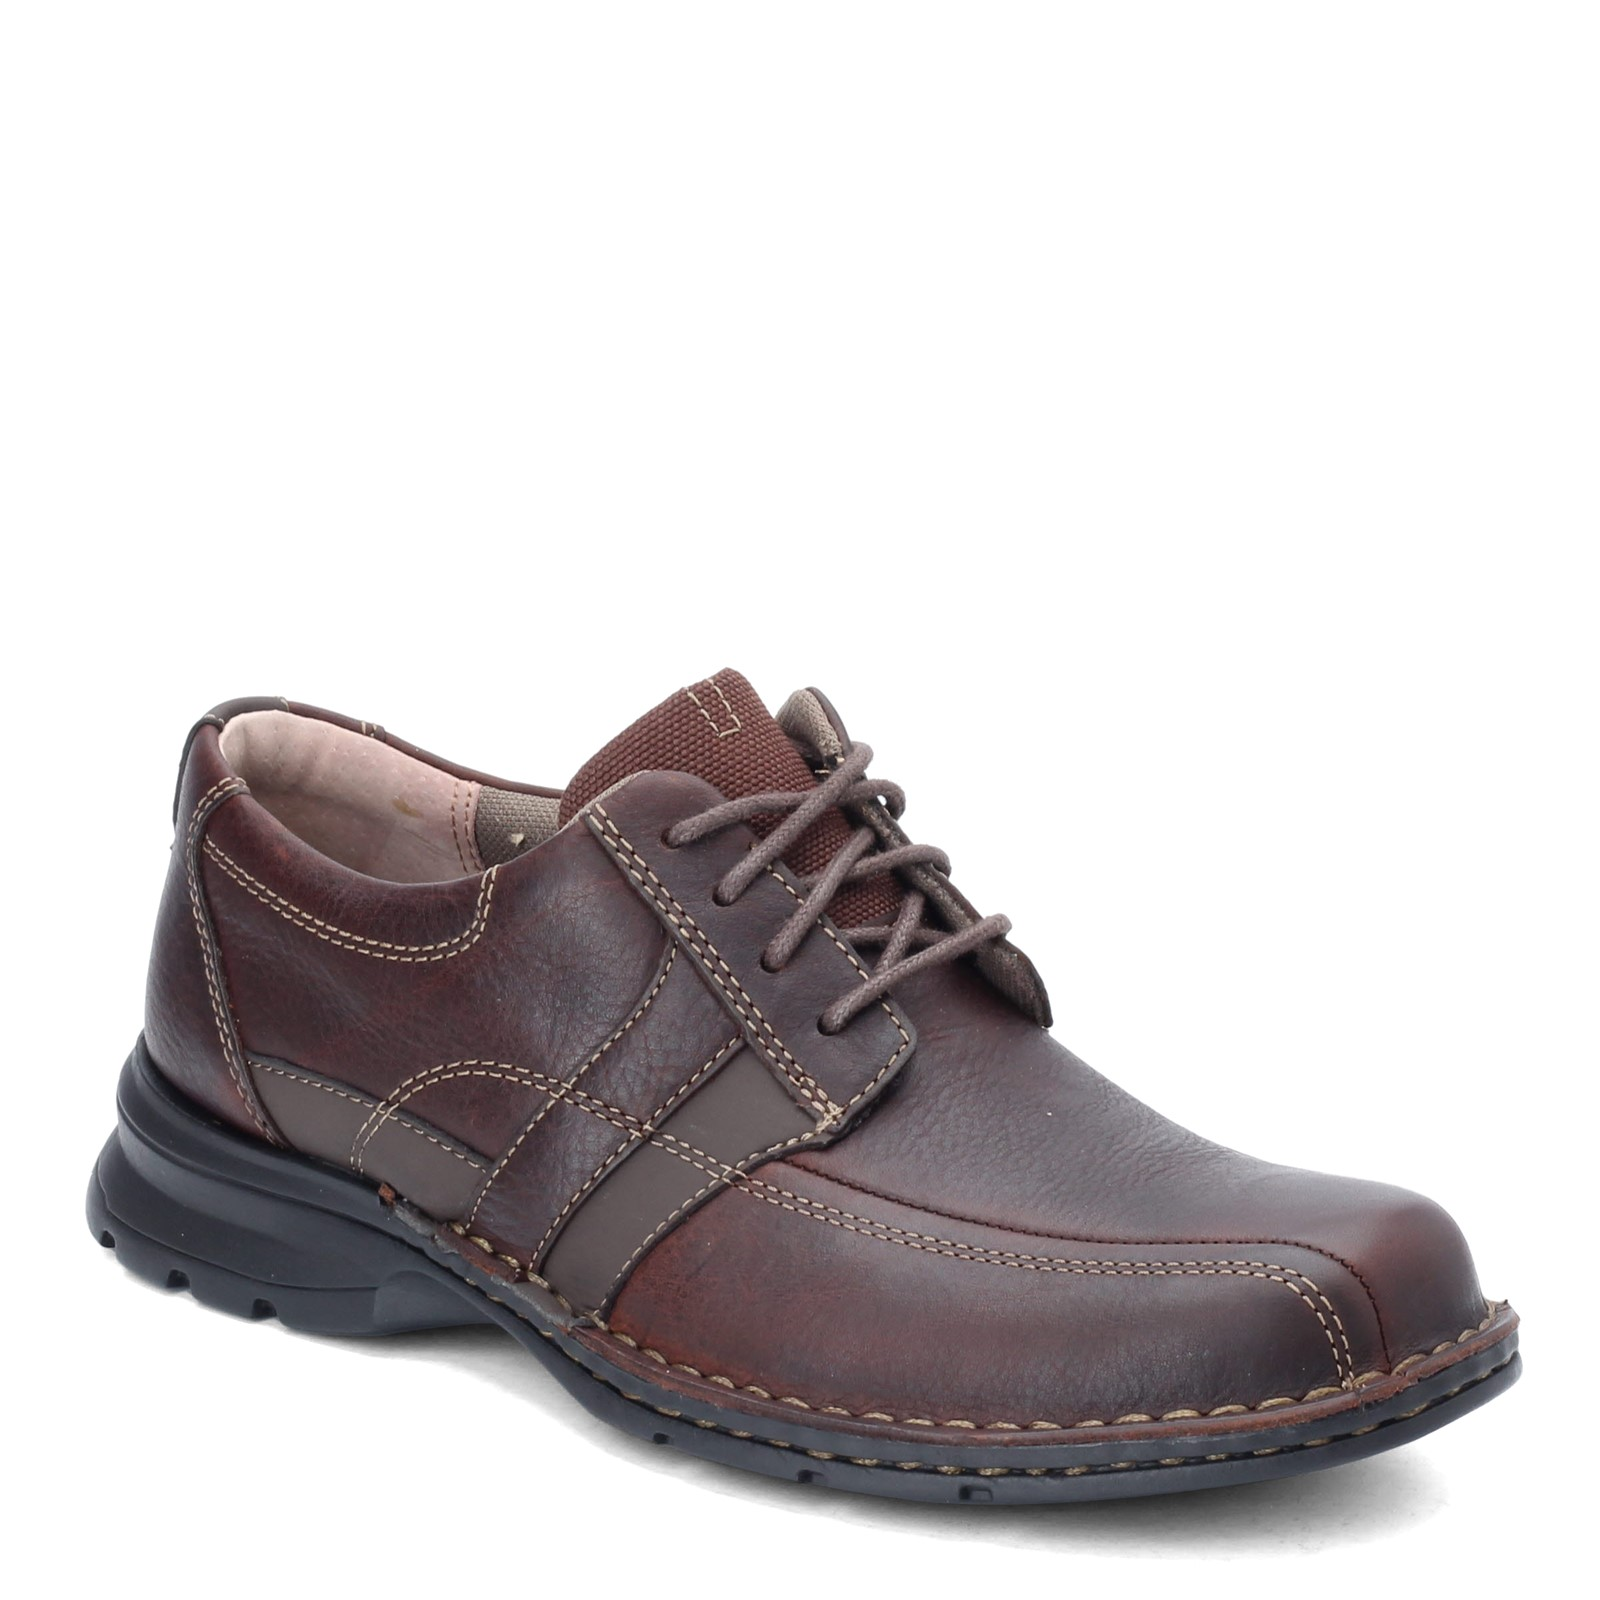 493a9226acdd1 Home; Men's CLARKS, ESPACE LACE UP SHOES. Previous. default view ...